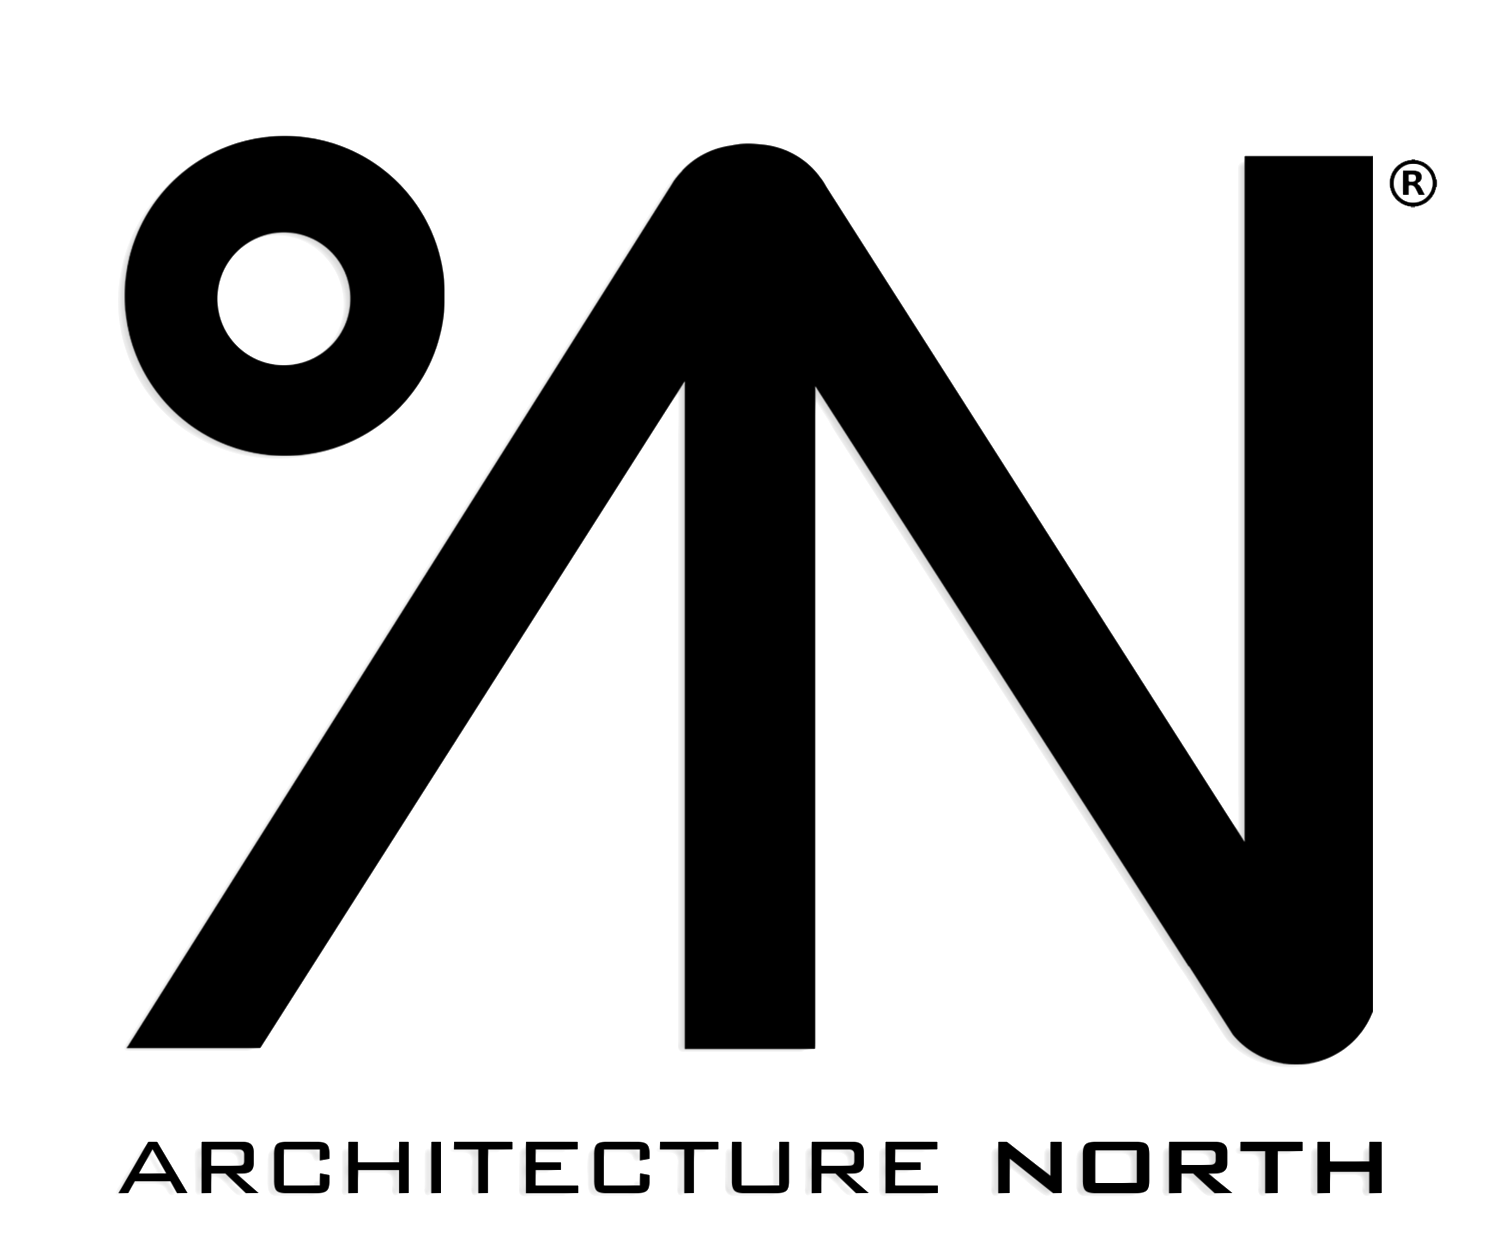 Residential Architectural Practice Based In Nottingham